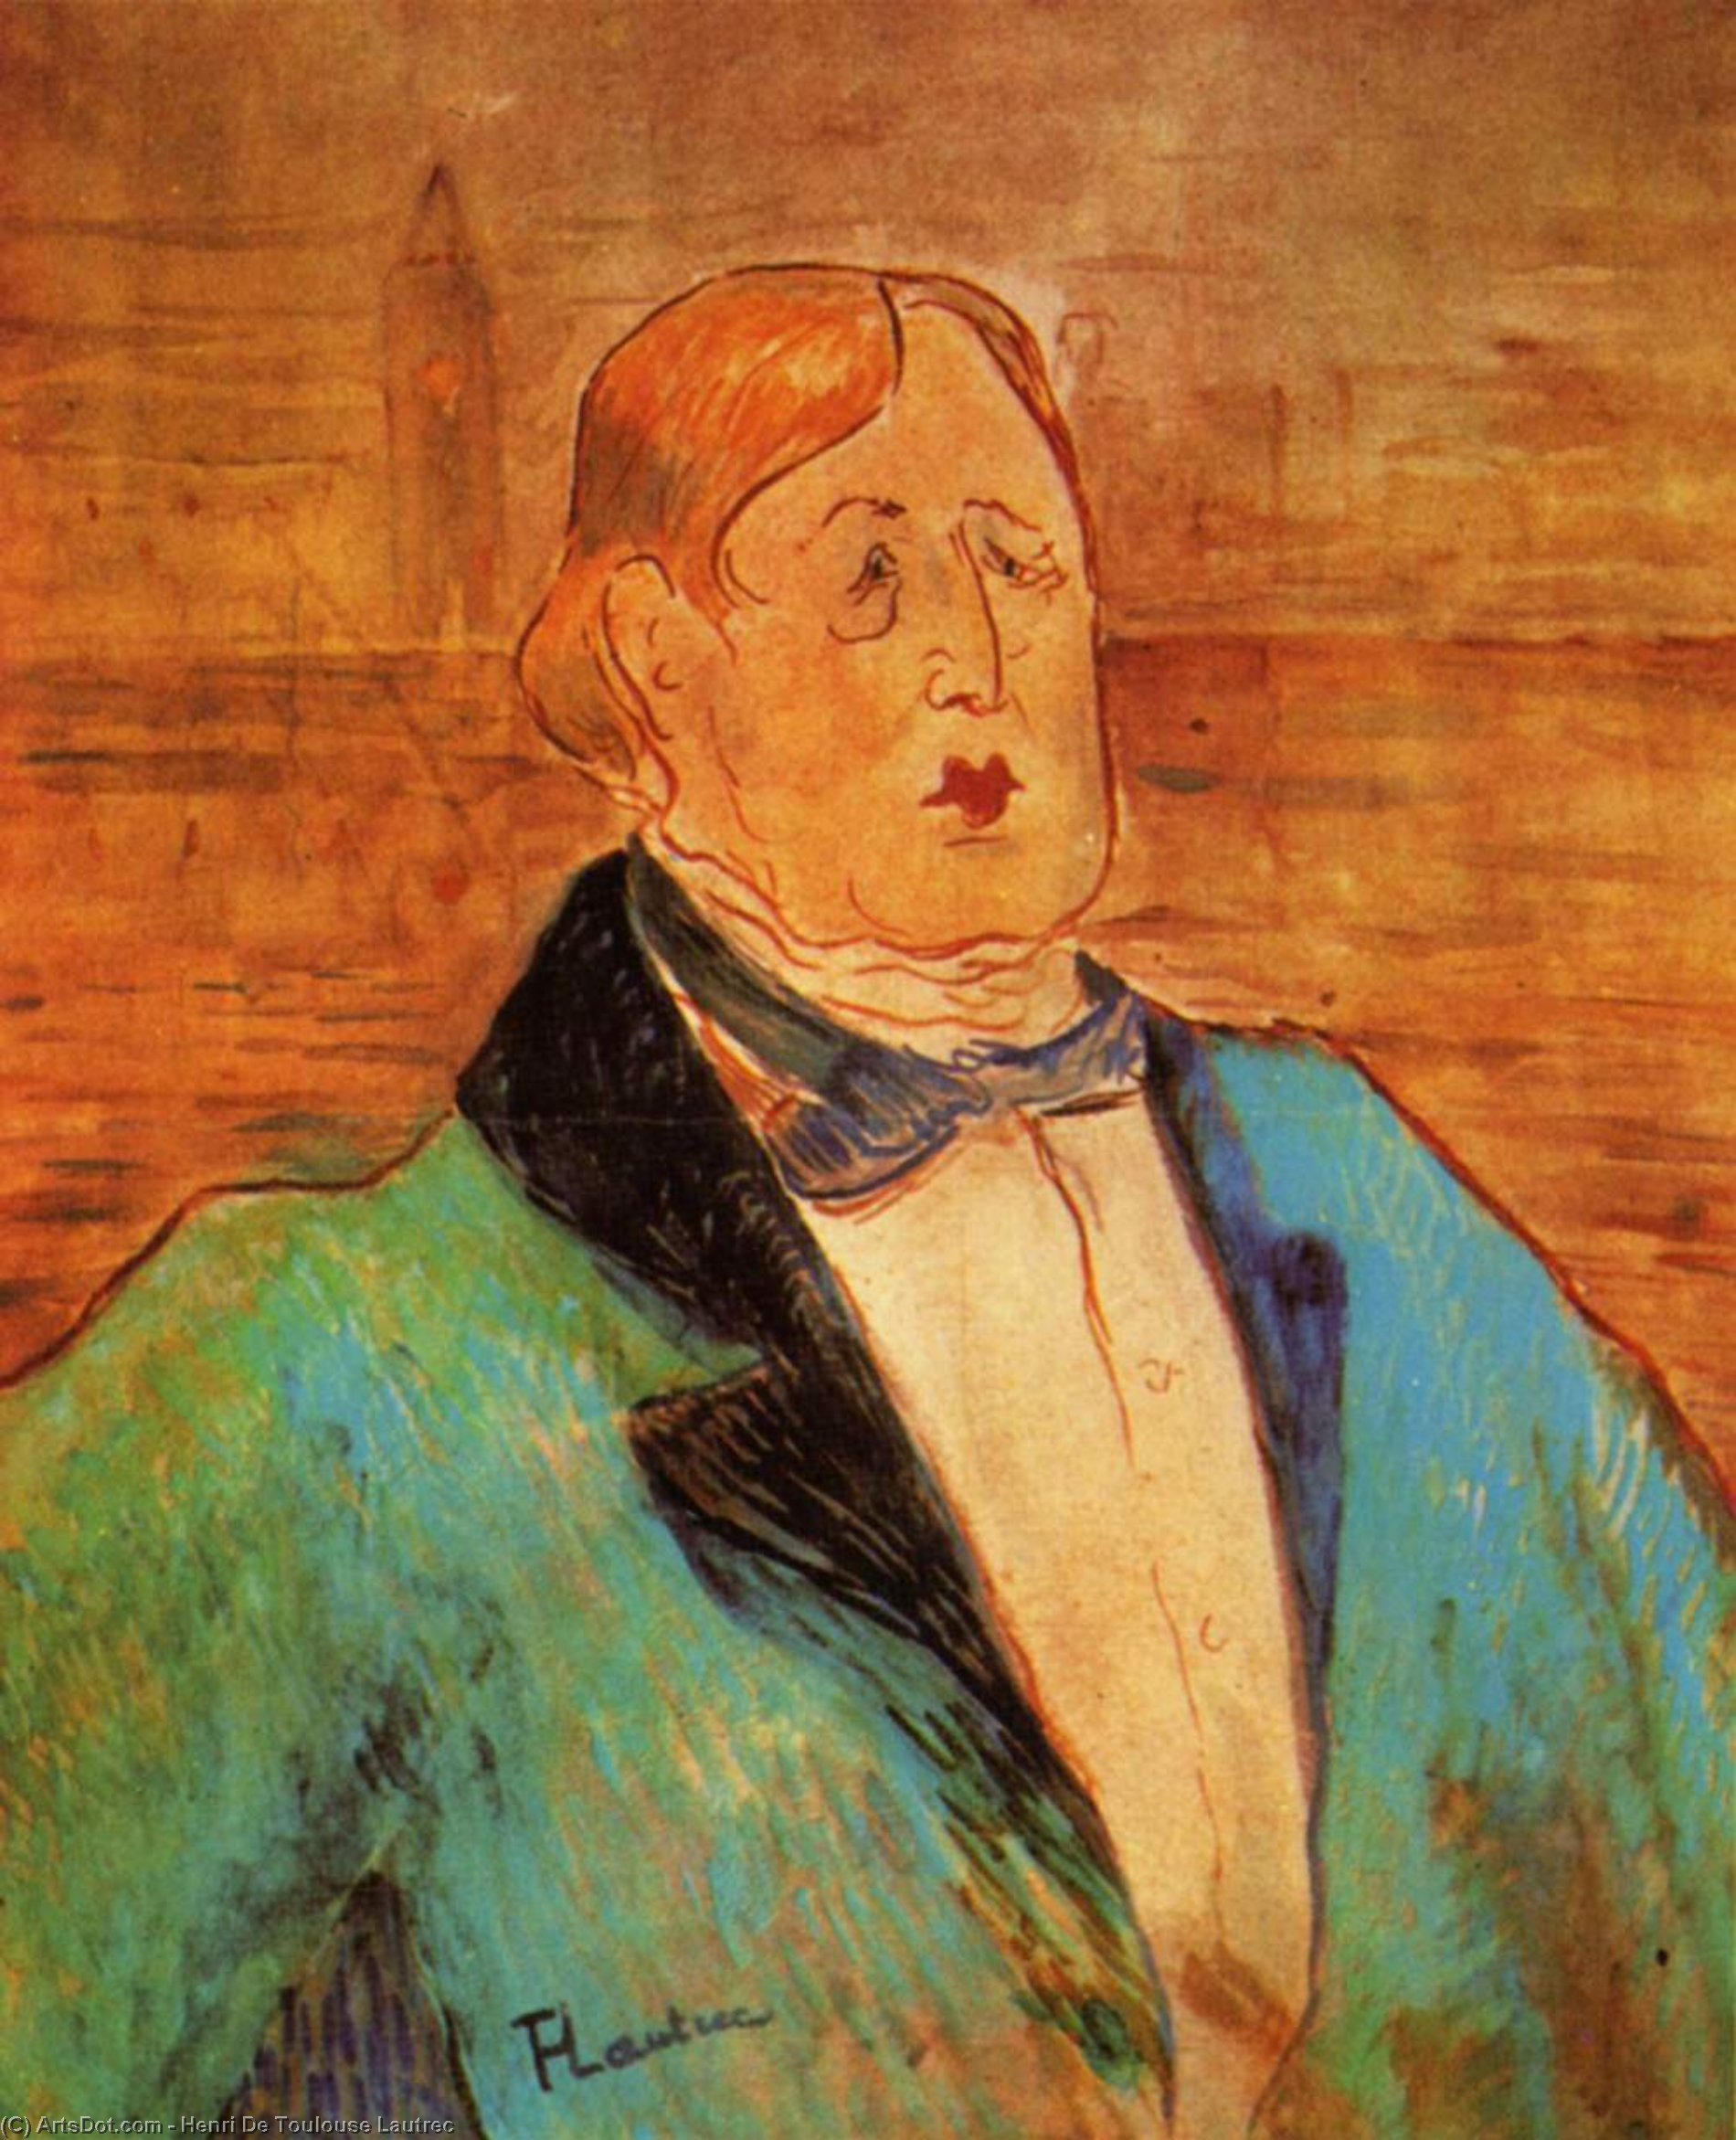 Portrait of Oscar Wilde, 1895 por Henri De Toulouse Lautrec (1864-1901, France)